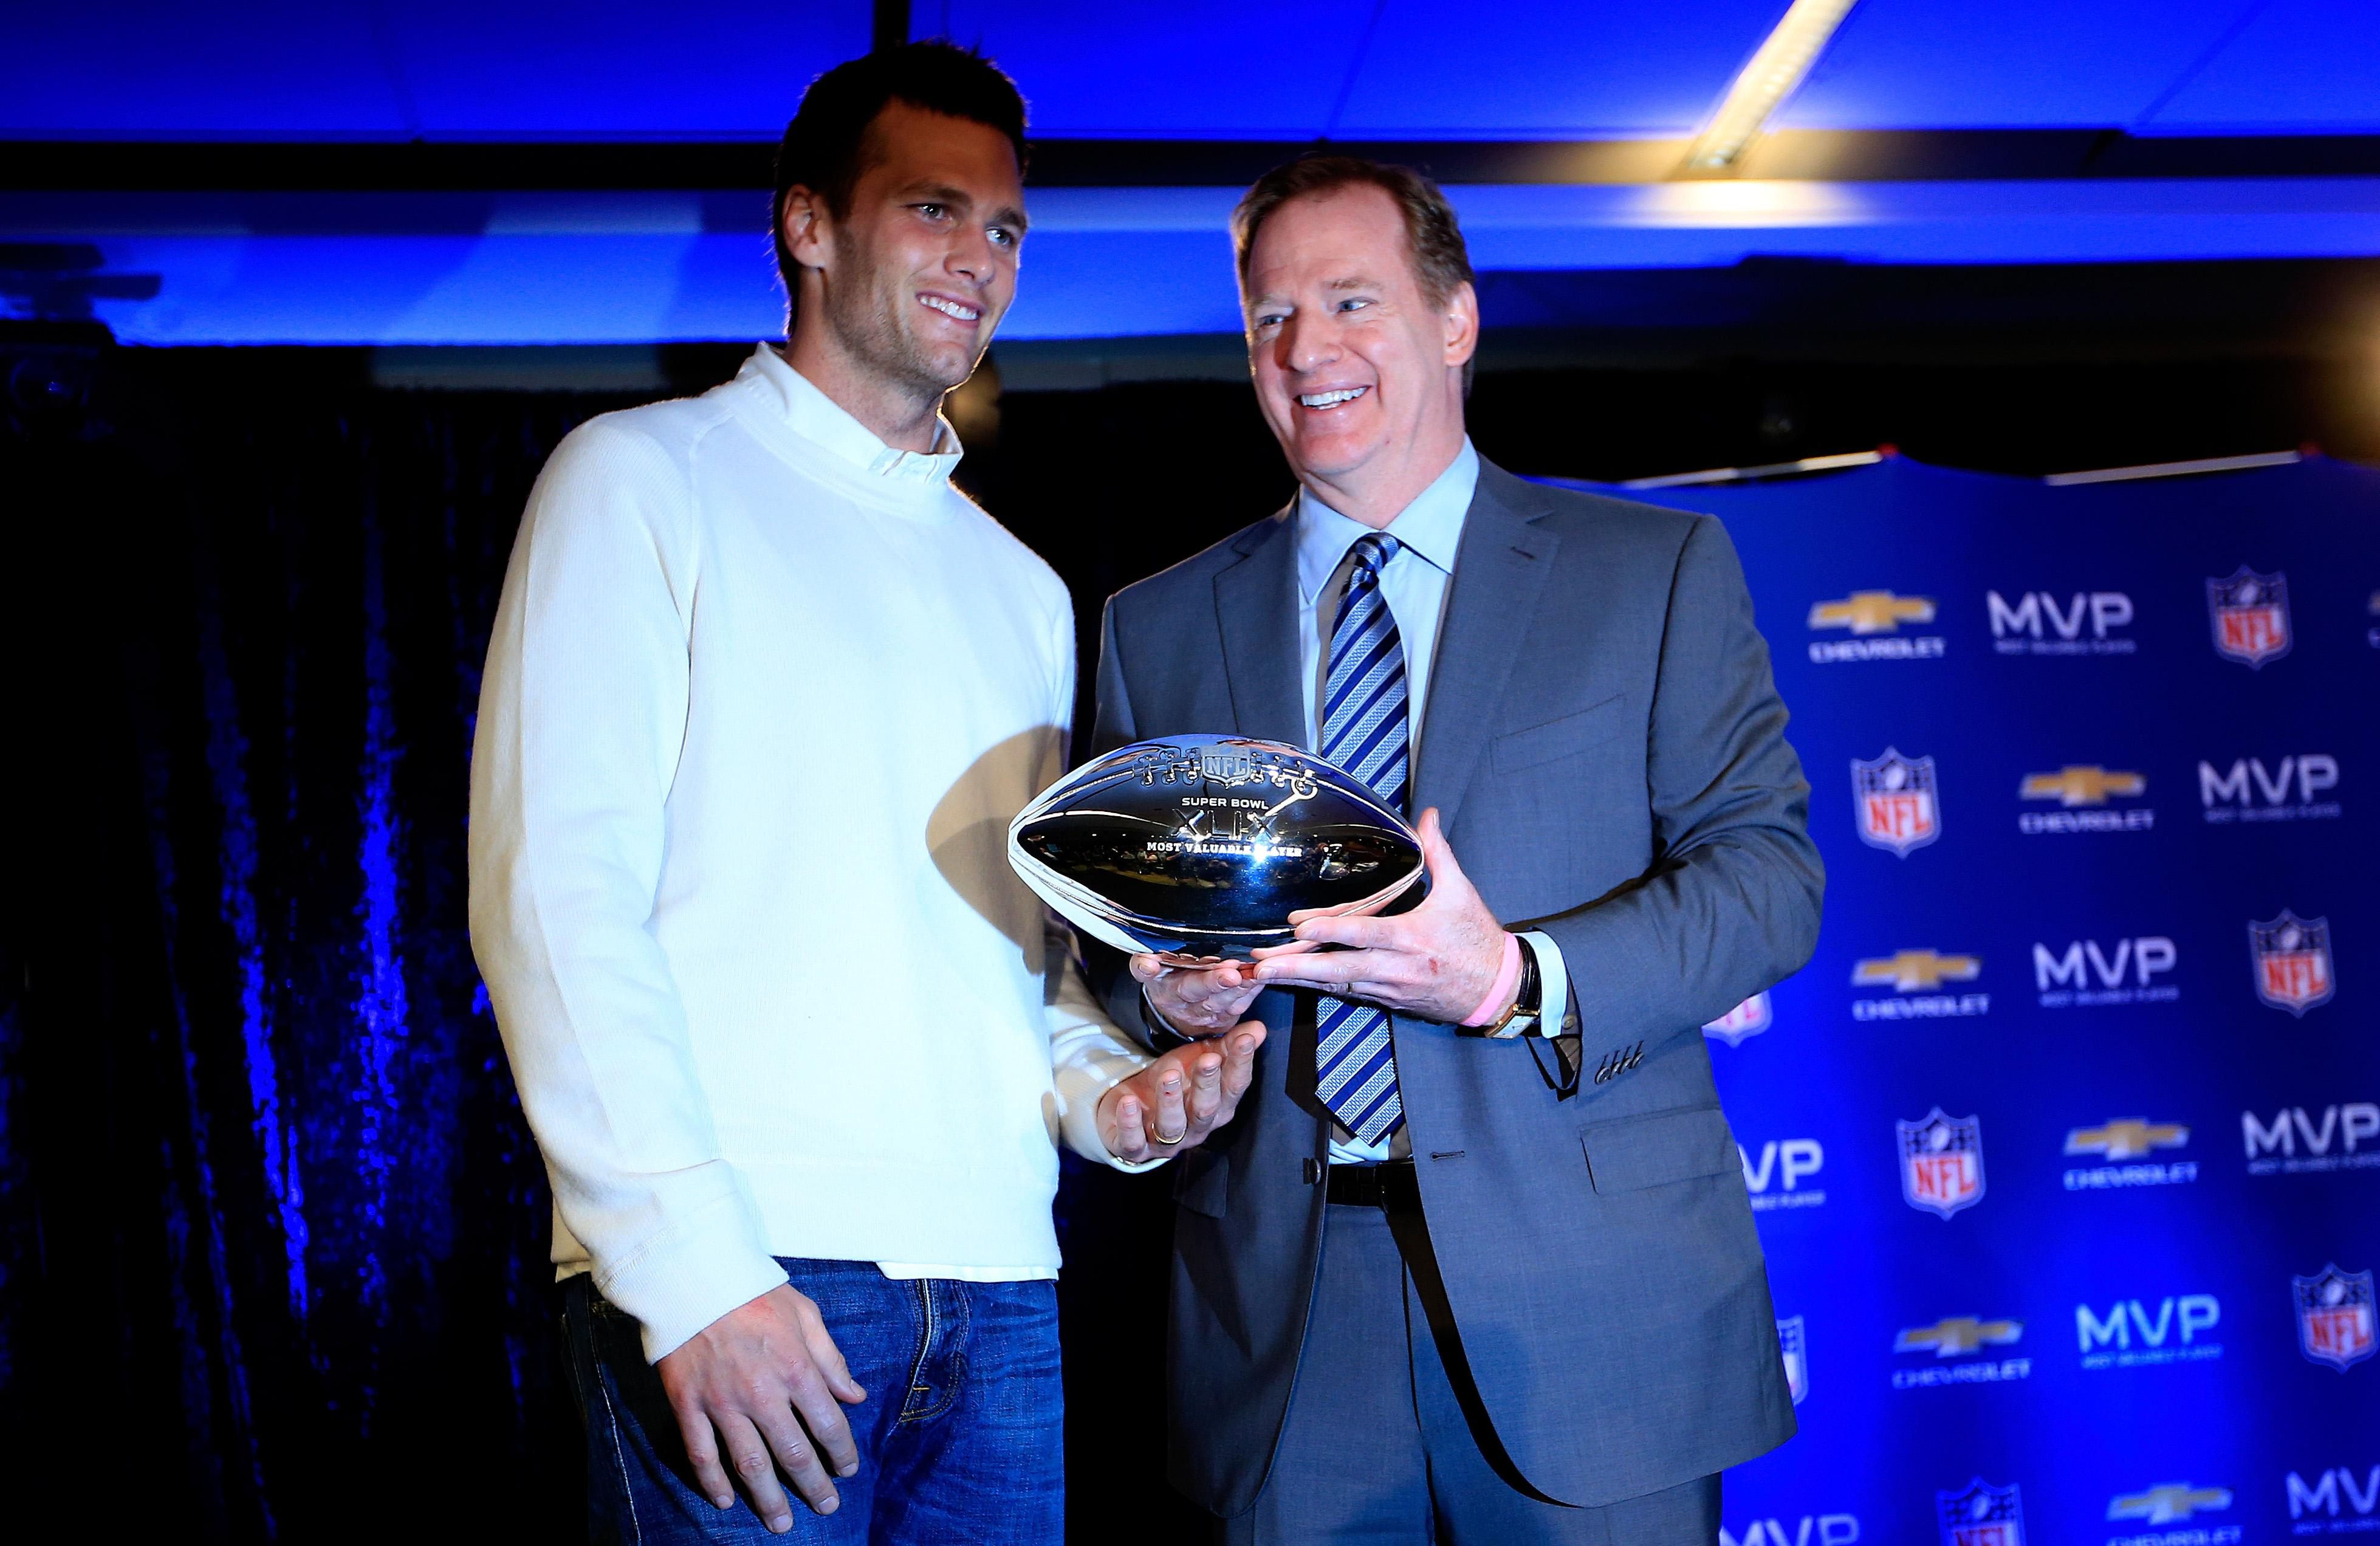 Tom Brady and Roger Goodell stand together on stage.